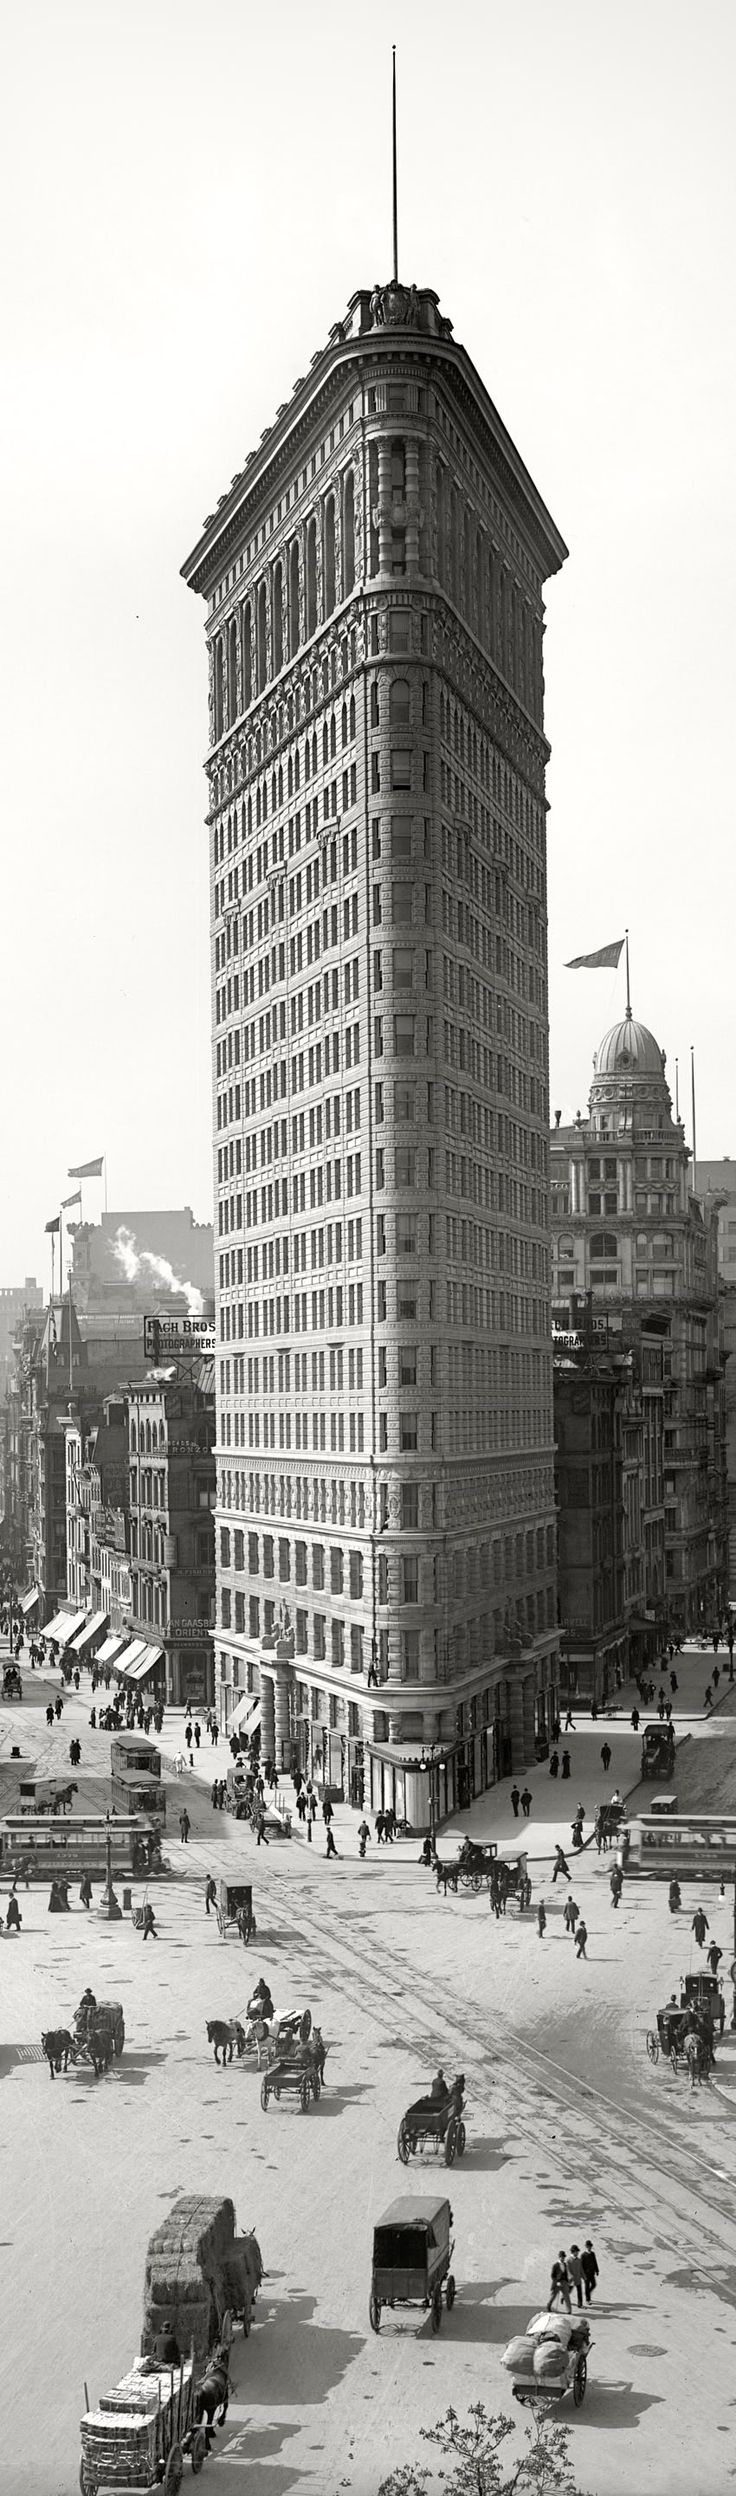 Flatiron Building, New York City, 1902. Architects: Daniel Burnham, Frederick P. Dinkelberg